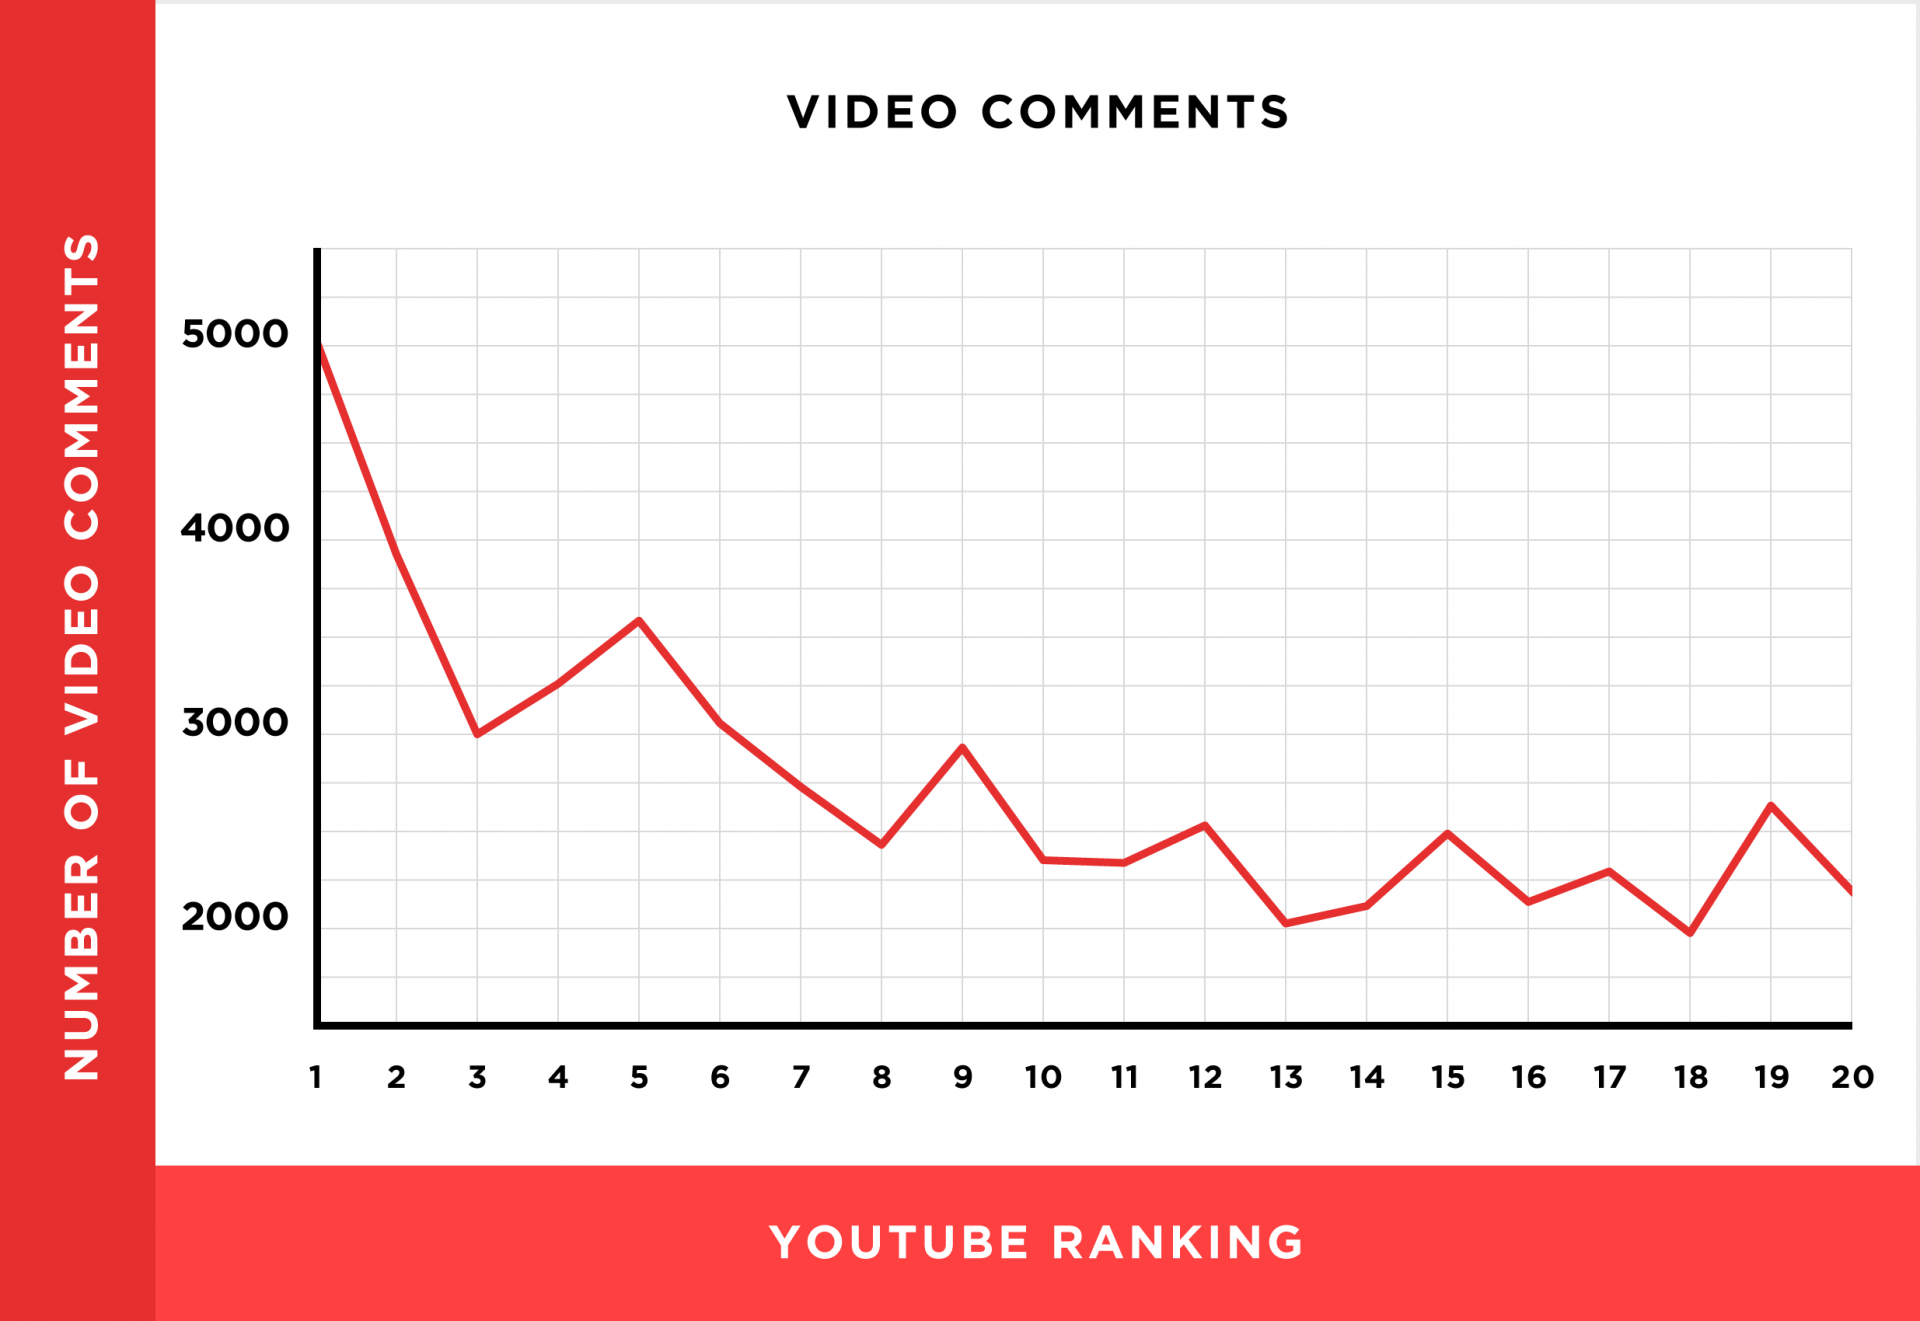 More YouTube video comments means better ranking.